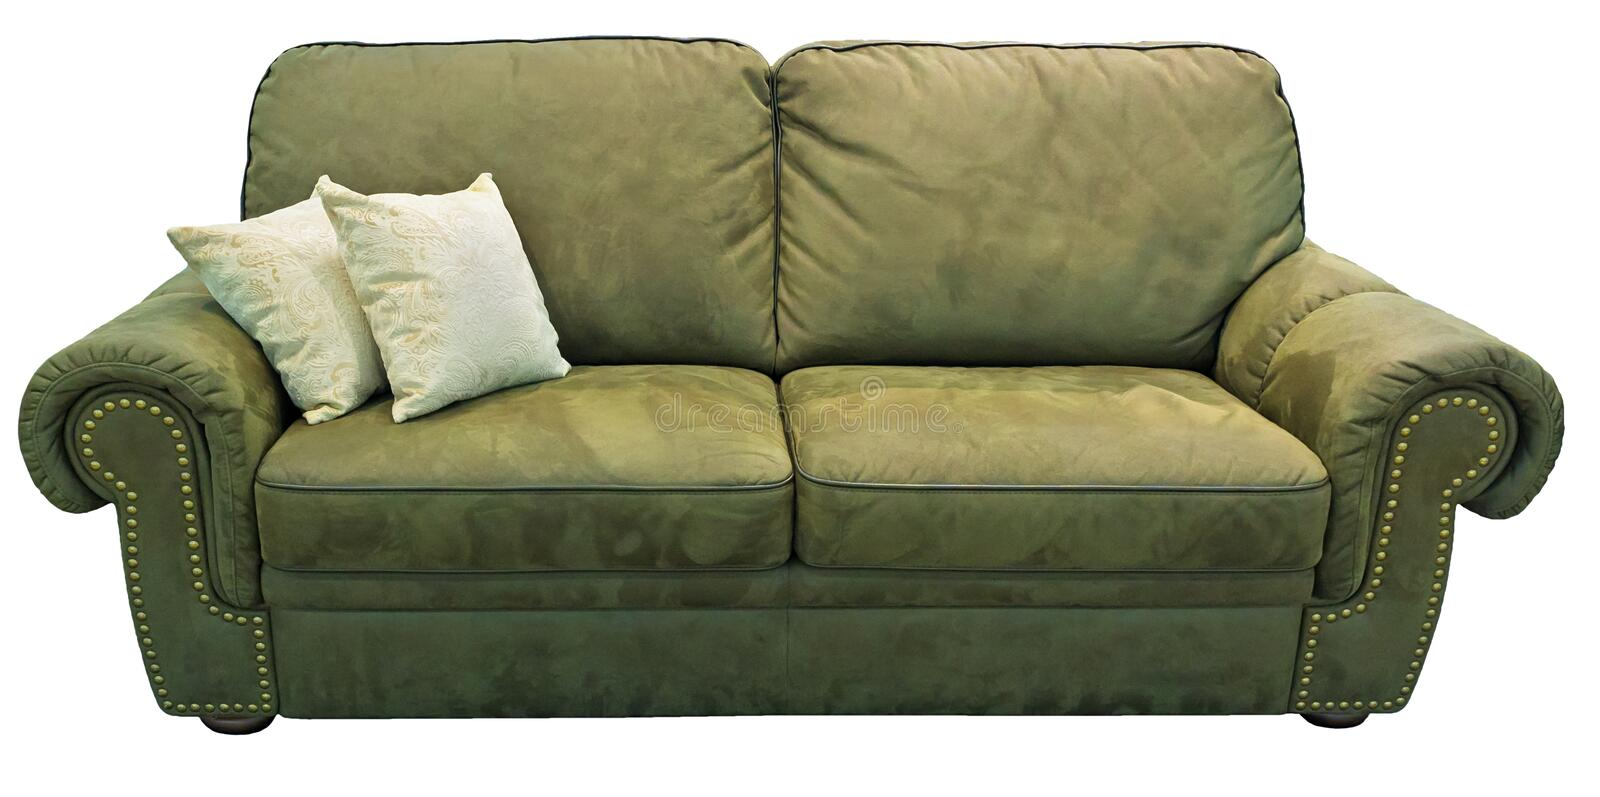 Green olive sofa with pillow. Soft khaki couch. Classic pistachio divan on isolated background. Velvet velor leather fabric sofa royalty free stock photo